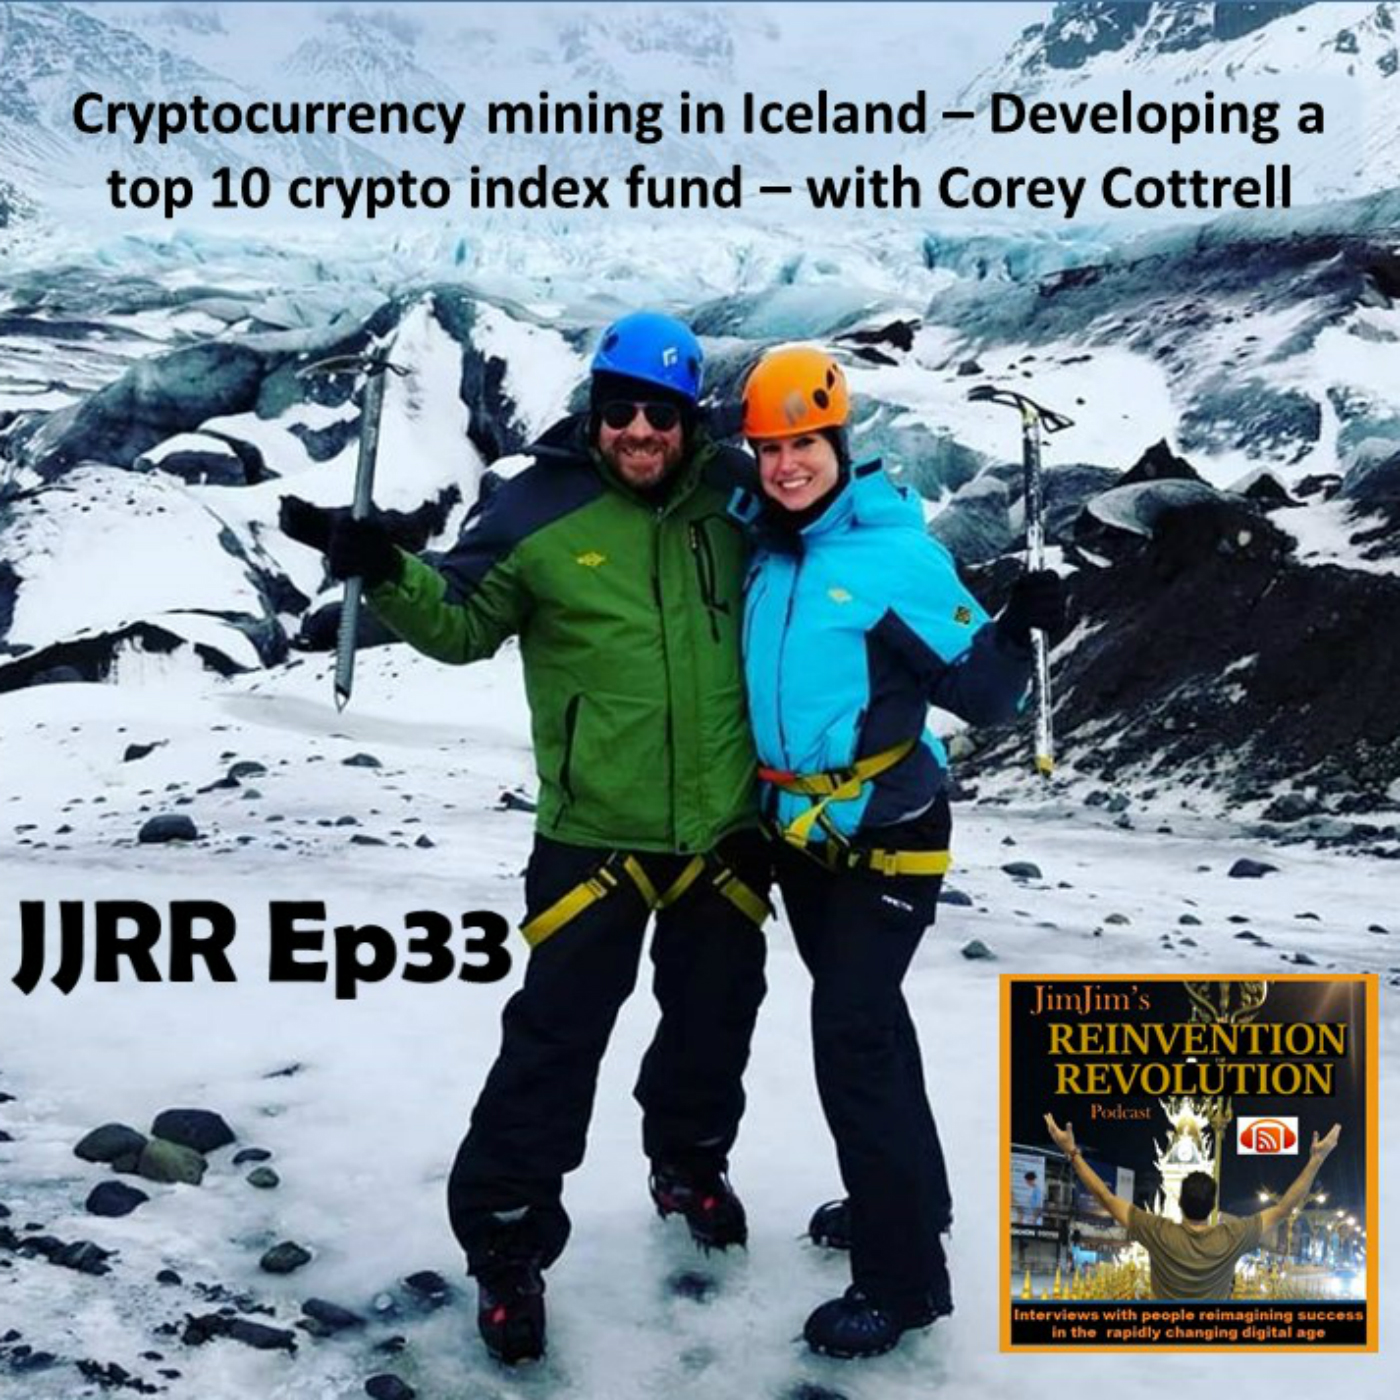 JJRR Ep33 Cryptocurrency mining in Iceland – Developing a top 10 crypto index fund – with Corey Cottrell